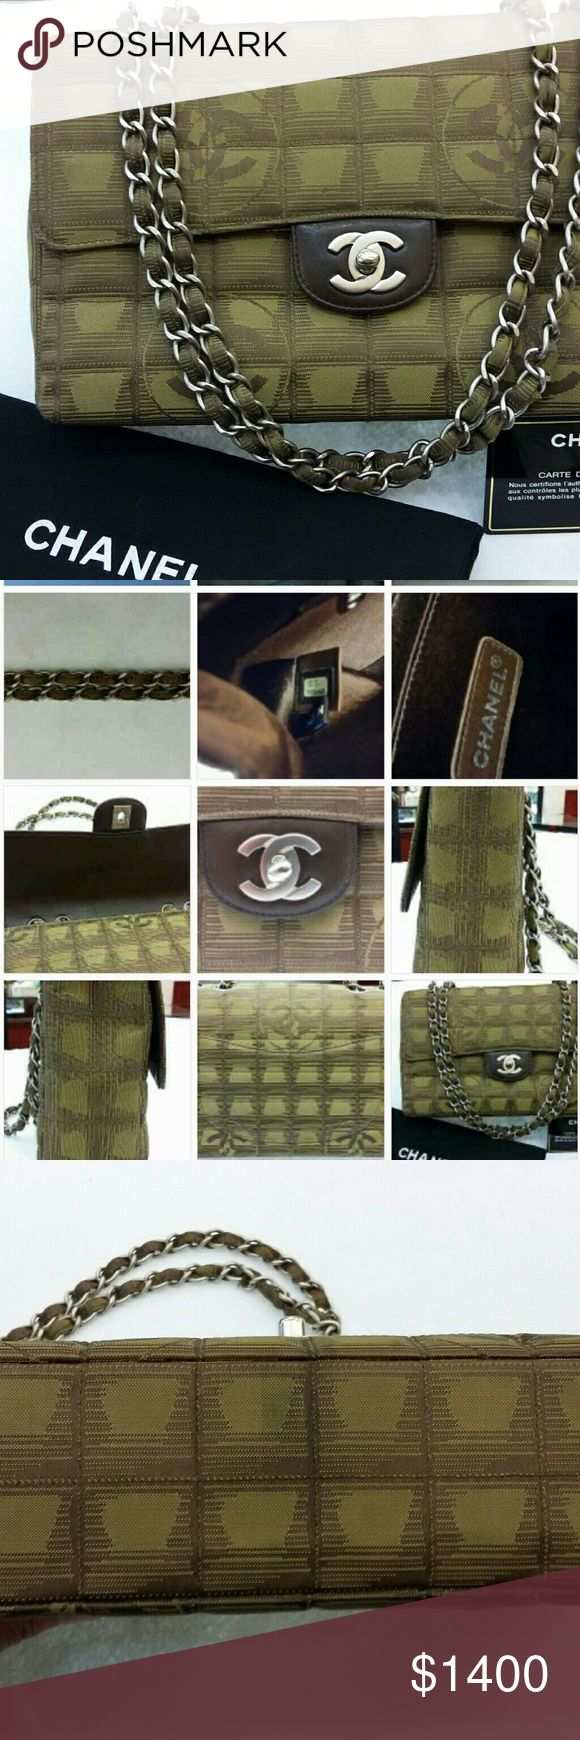 Chanel Shoulder Bag Chanel canvas olive green medium shoulder bag. Comes with authenticity card and dust bag. No trade Chanel   Bags Shoulder Bags